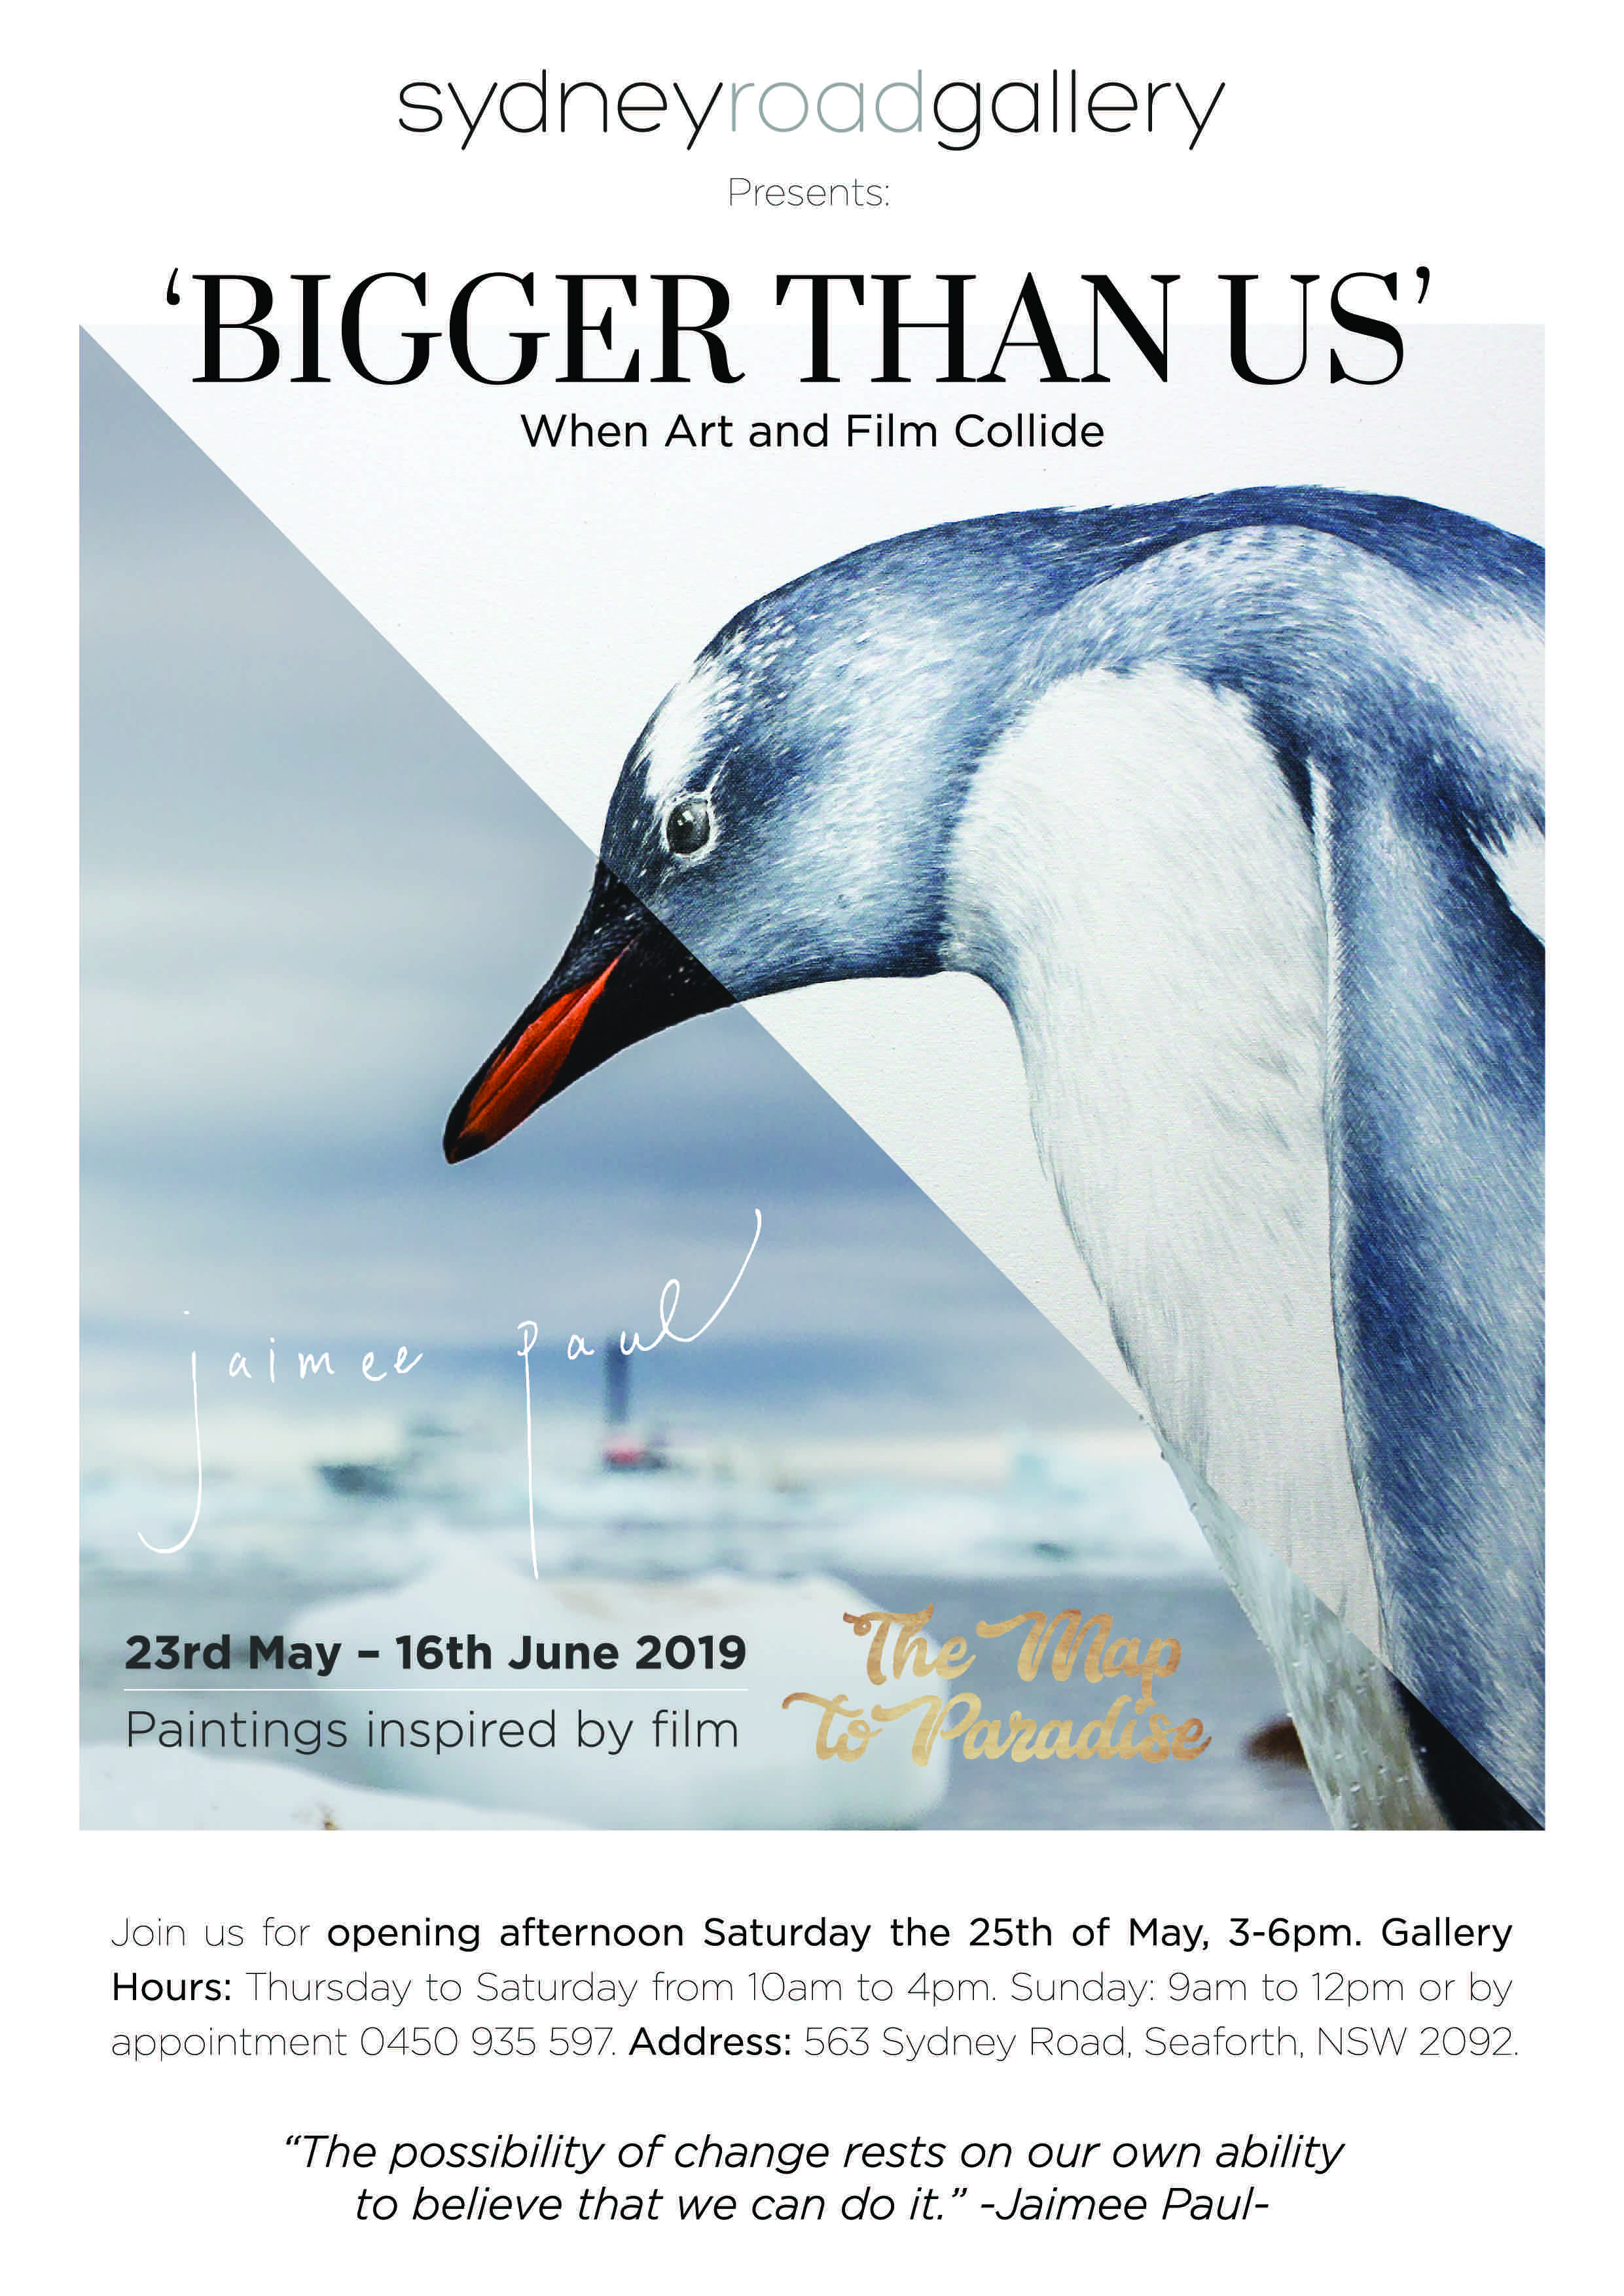 BIGGER THAN US - a Jaimee Paul Solo ExhibitionWhen: 23rd may - 9th June 2019Times: Thursday - Saturday 10am - 4pm & Sunday 9am - 12pmLocation: Sydney Road Gallery, 563 Sydney Road, Seaforth, NSW, 2092Read the story behind the showDownload Print Catalogue | Online Catalogue